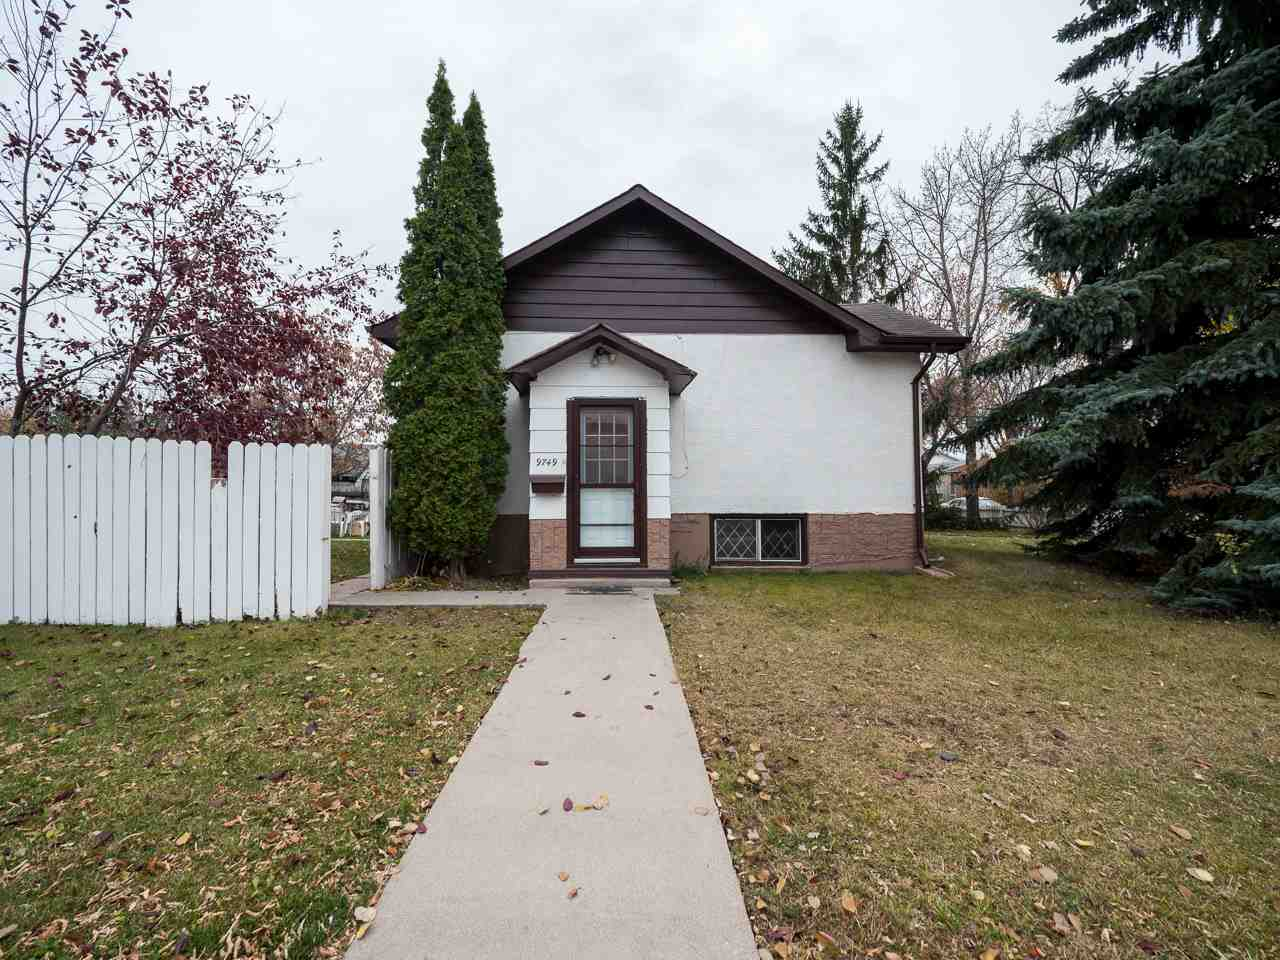 Main Photo: 9749 151 Street in Edmonton: Zone 22 House for sale : MLS® # E4085338